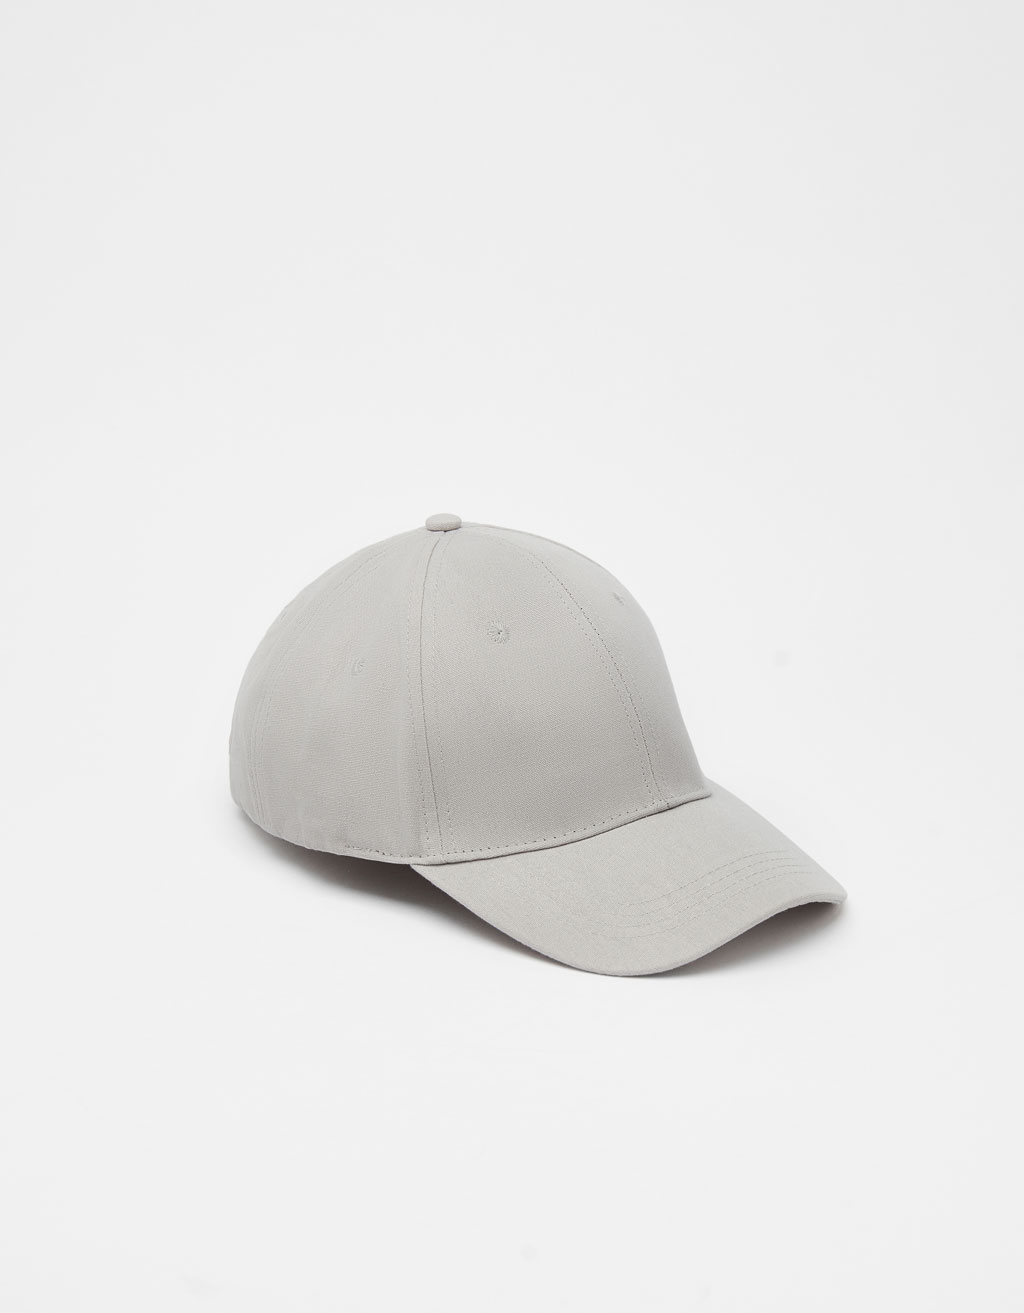 Casquette style base-ball